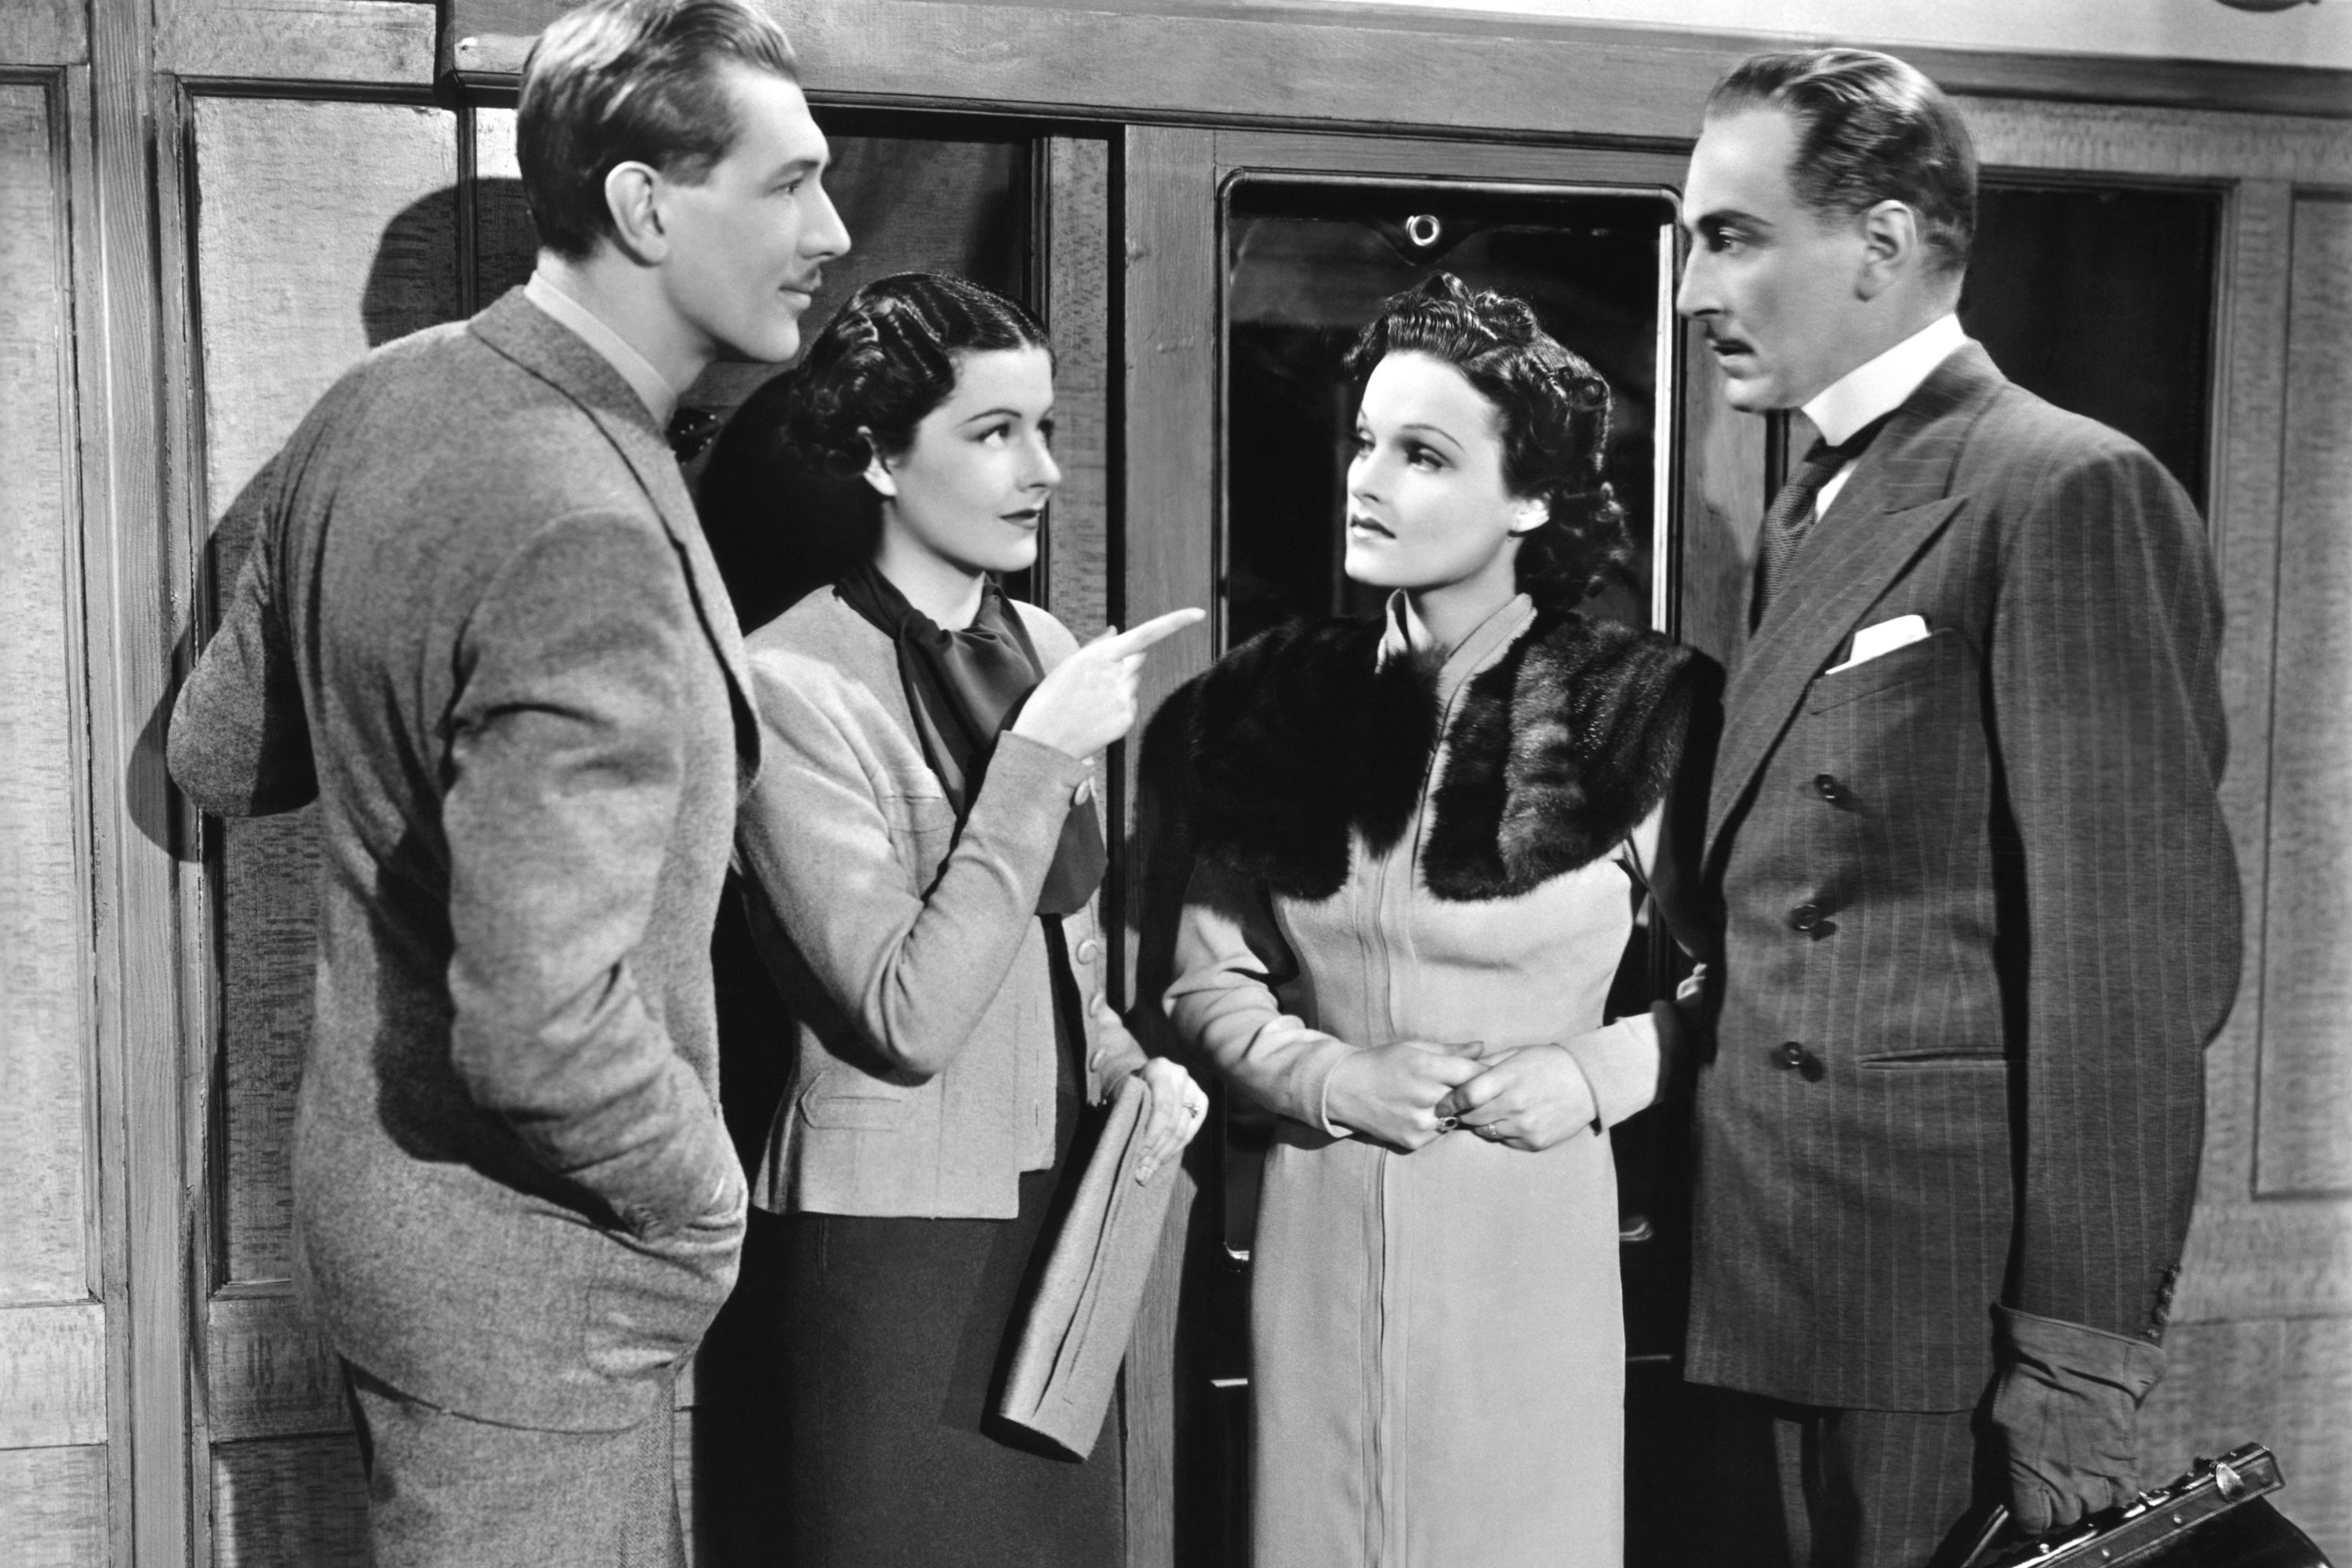 Watch Now Produced in his native England before he came to the U.S., The Lady Vanishes demonstrates Alfred Hitchcock's grasp of taut mystery storytelling, and his good humor too. Margaret Lockwood stars as the spunky Iris, an Englishwoman who explores the disappearance of a fellow passenger aboard a sleeper train in wintry Eastern Europe.